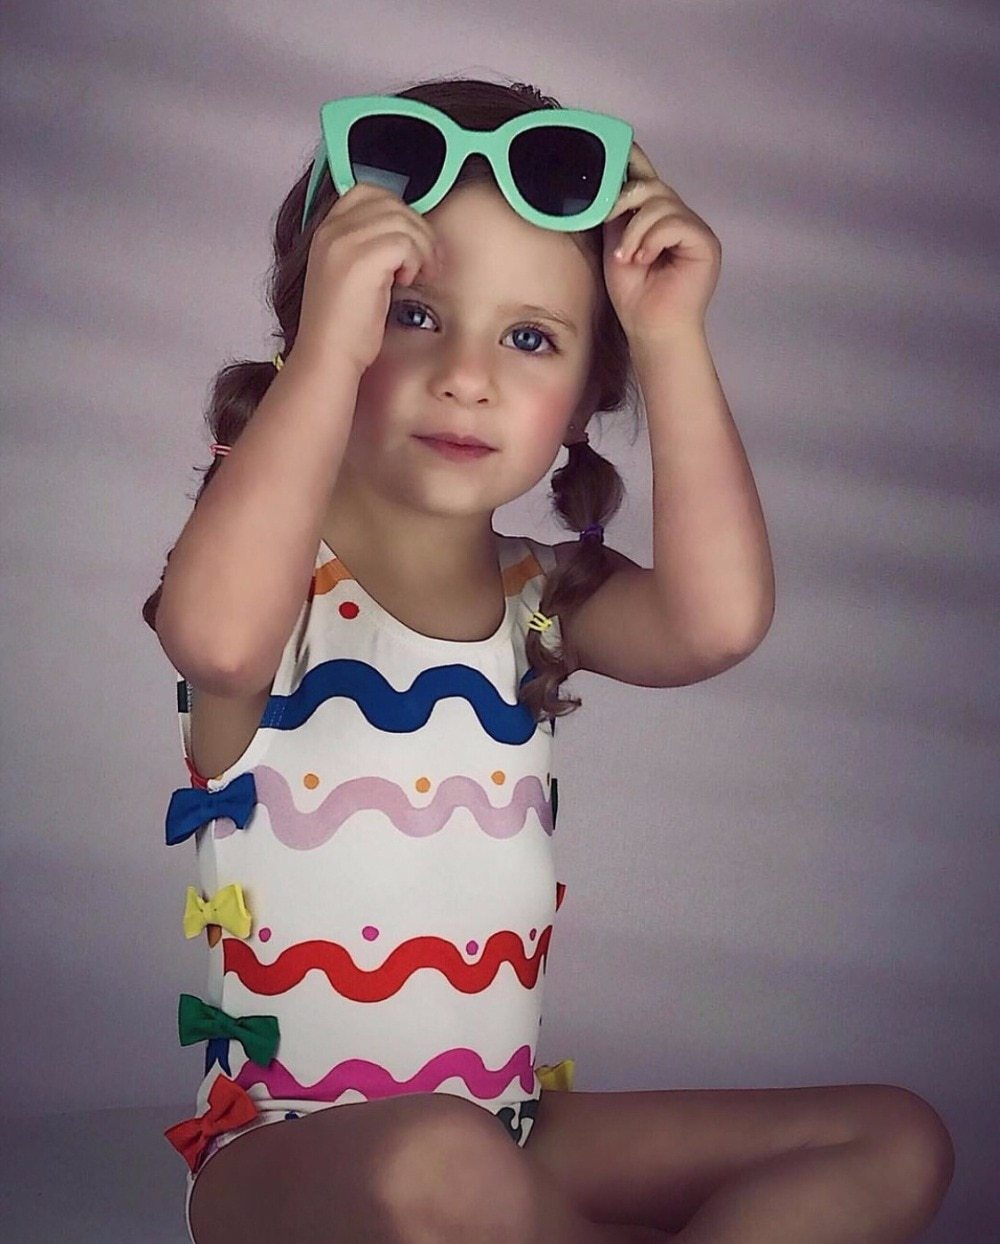 Carnival Wave Swim Suit - Okiedokee Children's Boutique Kids Fashion Baby Clothes Cool Children's Clothing